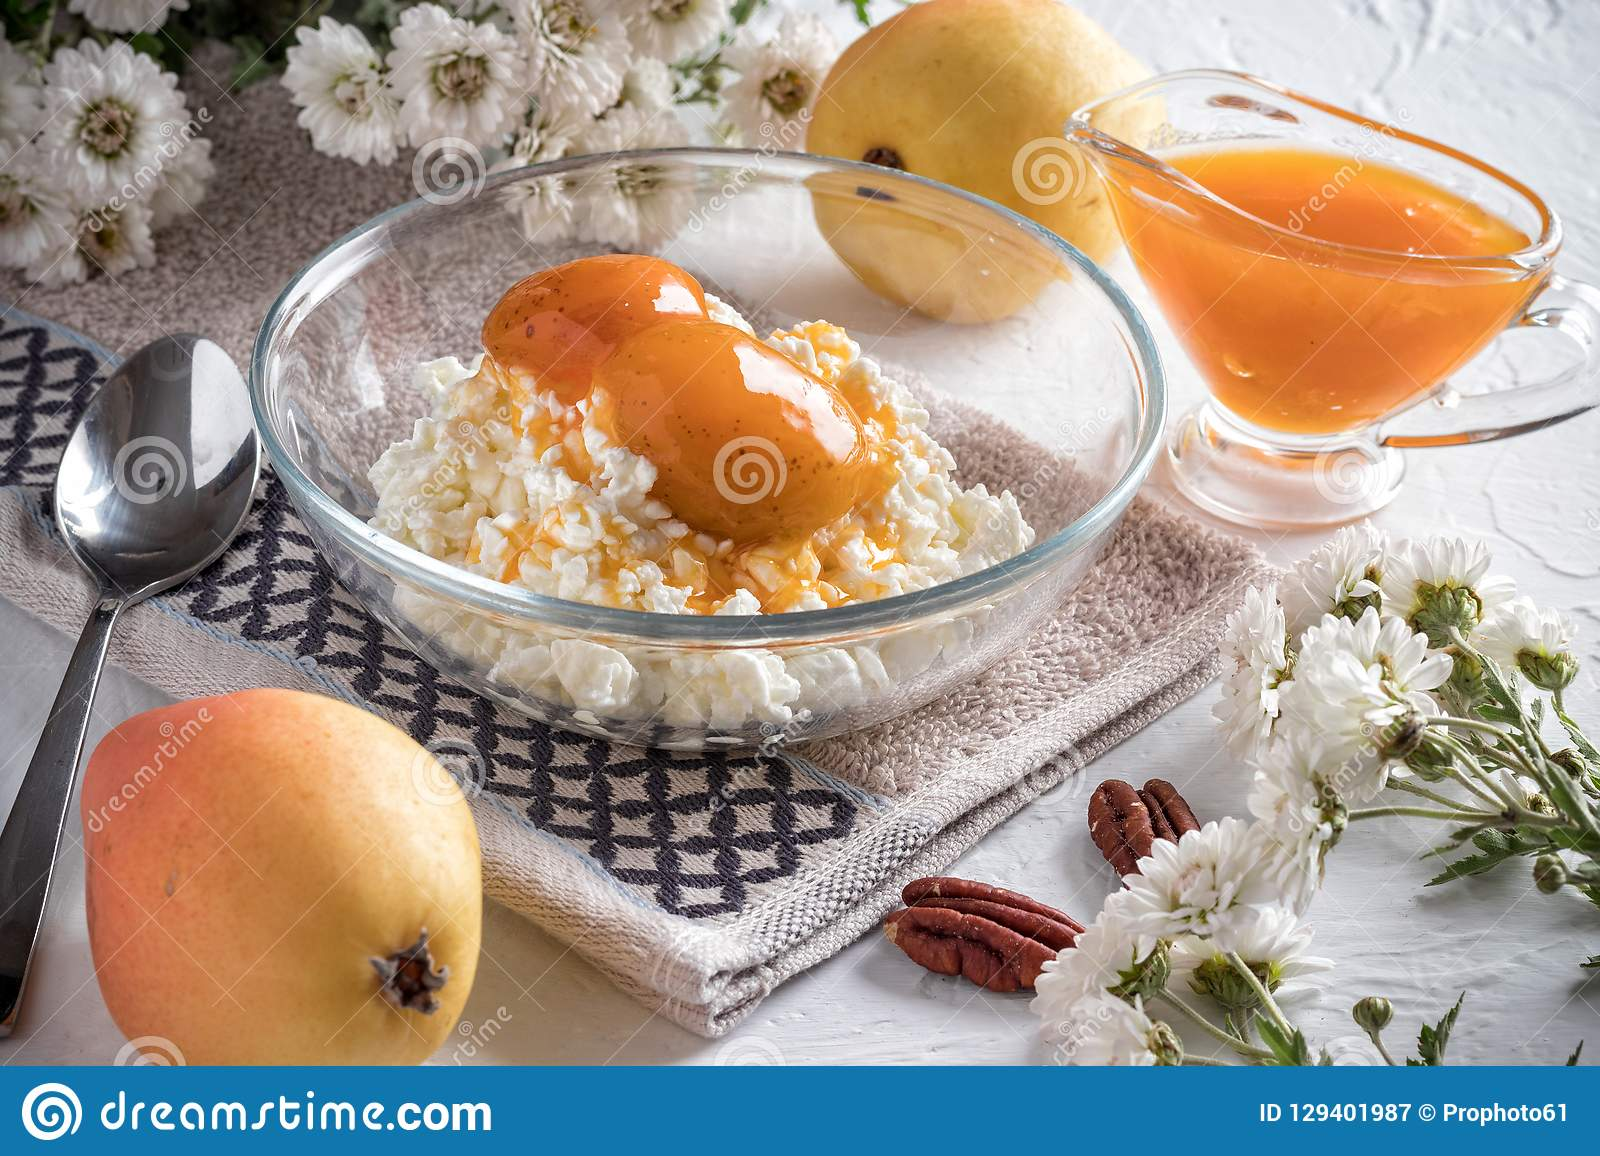 Breakfast of cottage cheese, pear and jam royalty free stock photography